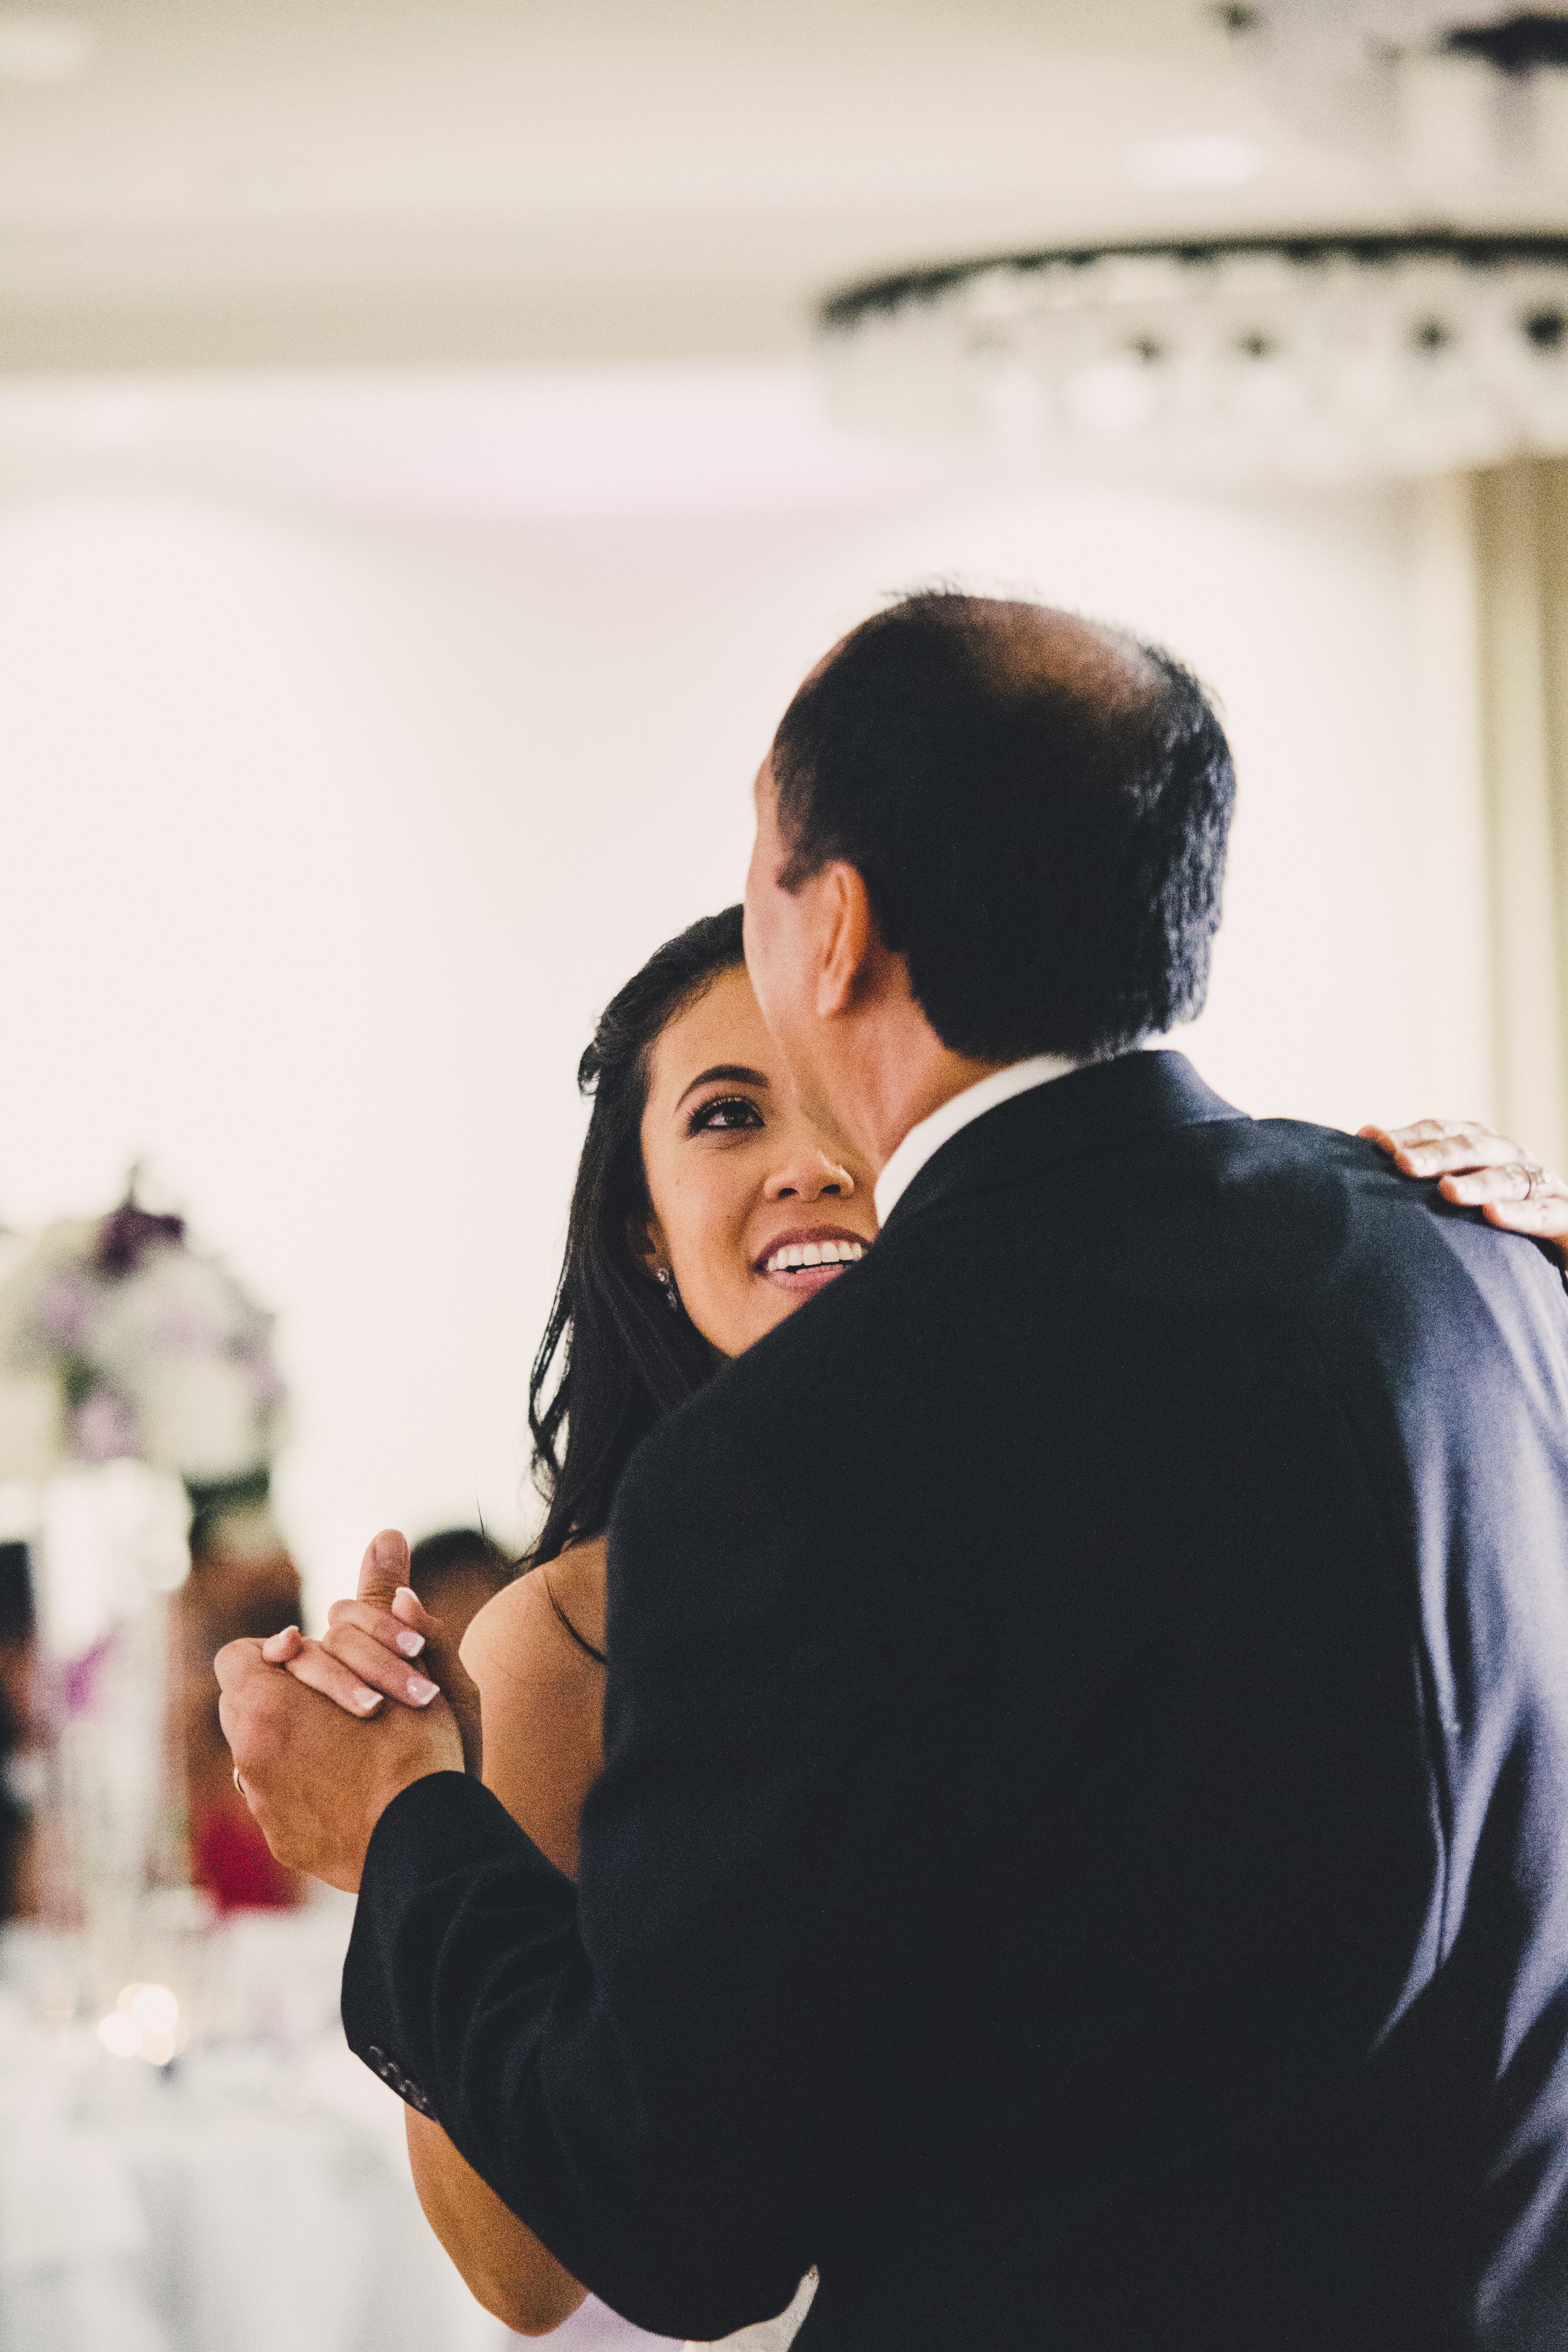 Madel + Andrew - Wedding, Natalie Griffo (149 of 169).jpg